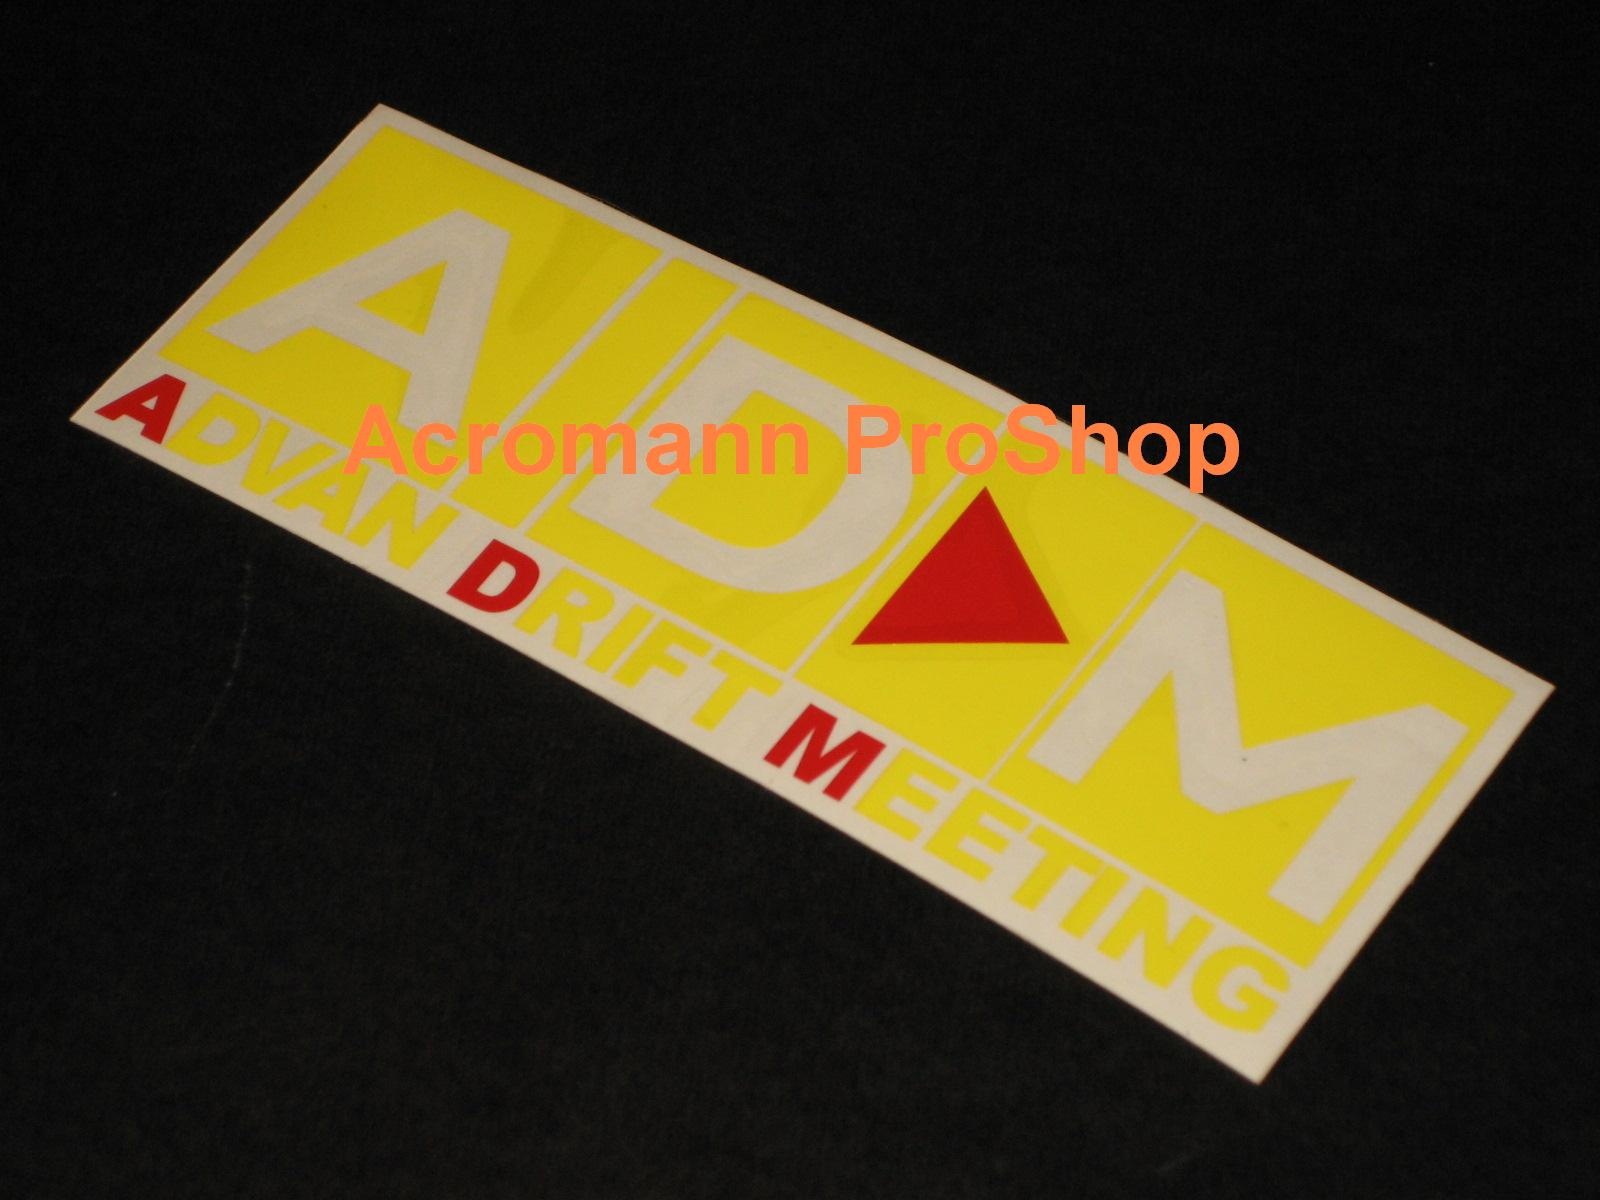 ADM ADVAN Drift Meeting D1 6inch Decal x 2 pcs